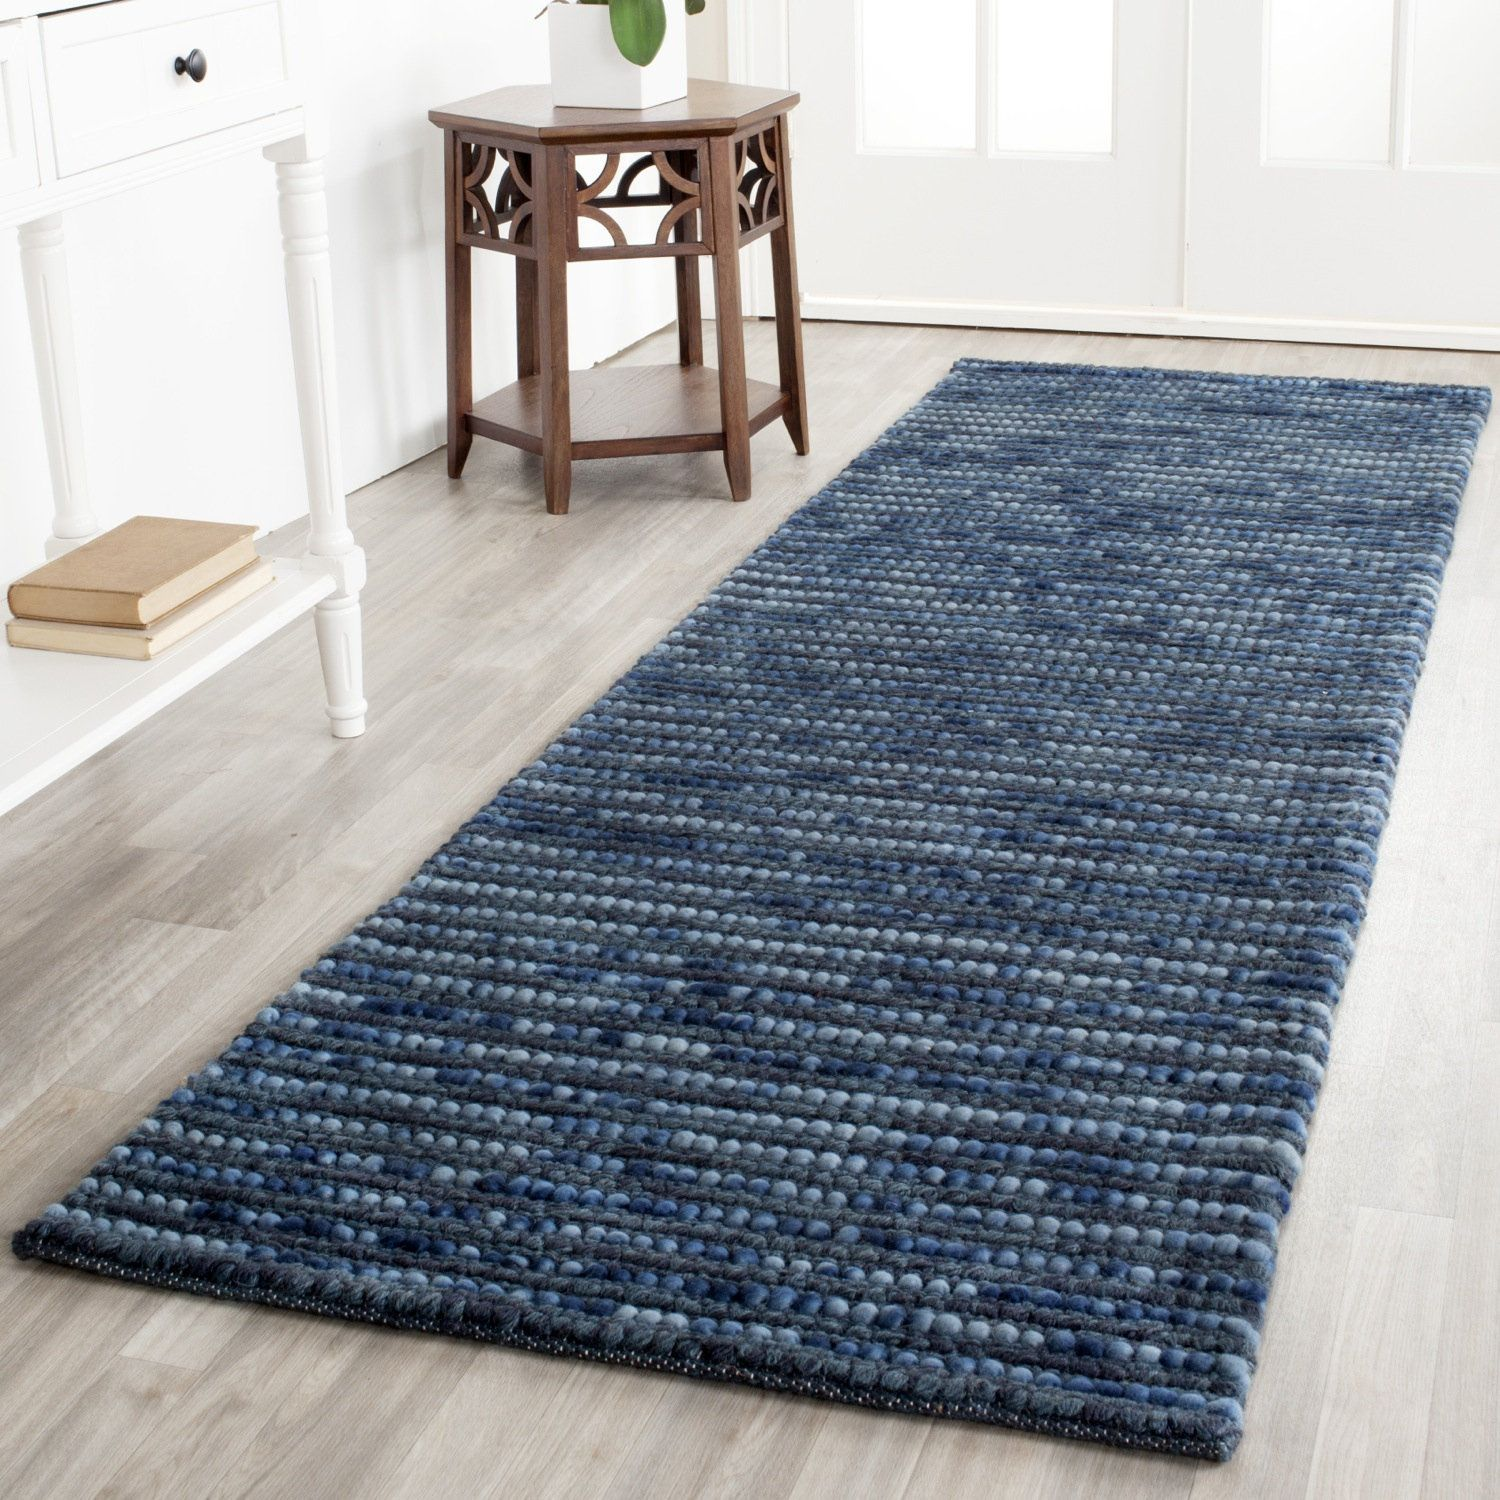 Blue Silver Wool Geometric Graphic Solid Runner Rugs Use